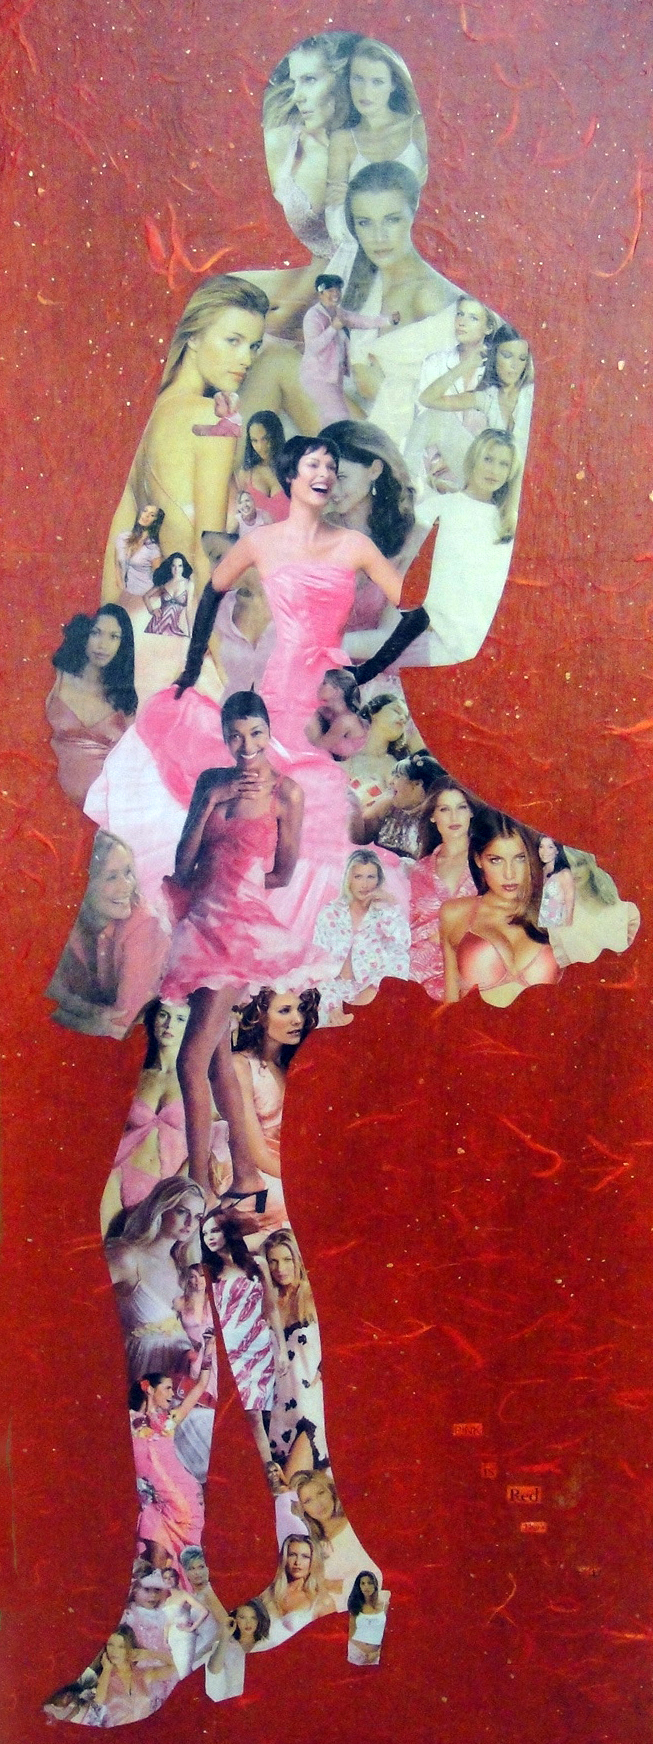 Collage of a female figure made from magazine clippings and decorative papers: Pink Is Red That's Very Shy (2008)